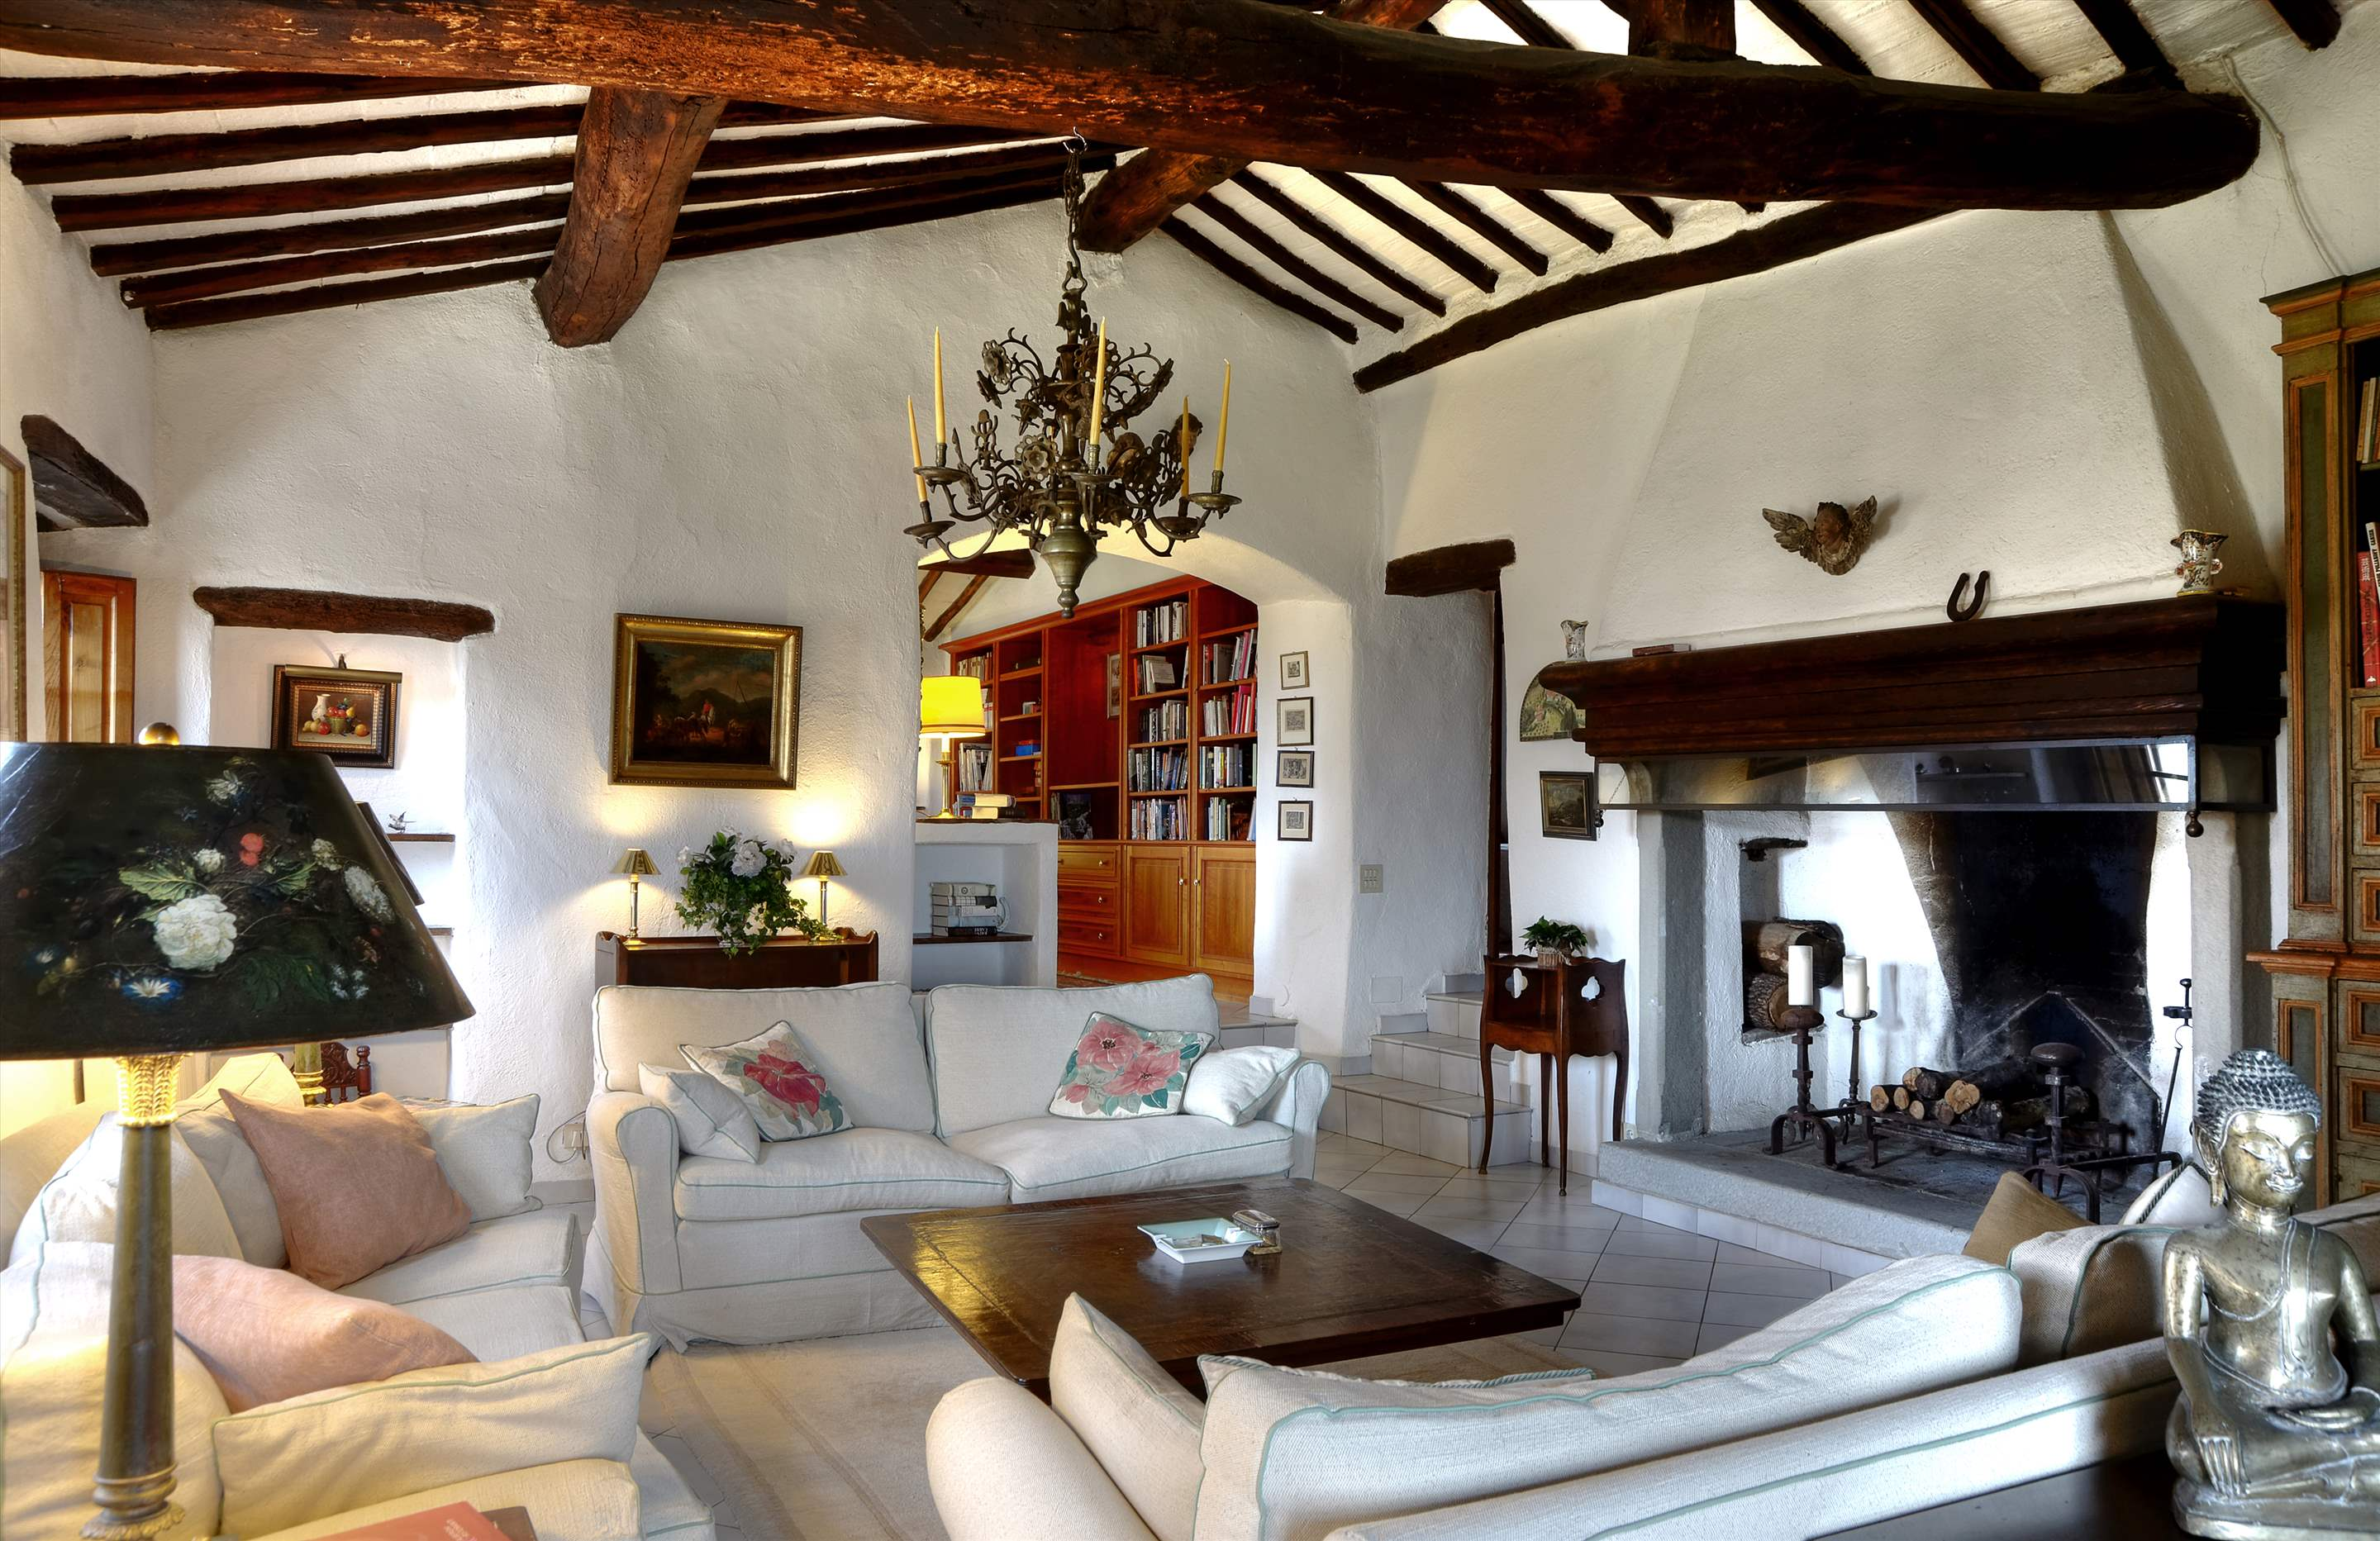 Villa Campana, 5 bedroom villa in Chianti & Countryside, Tuscany Photo #3